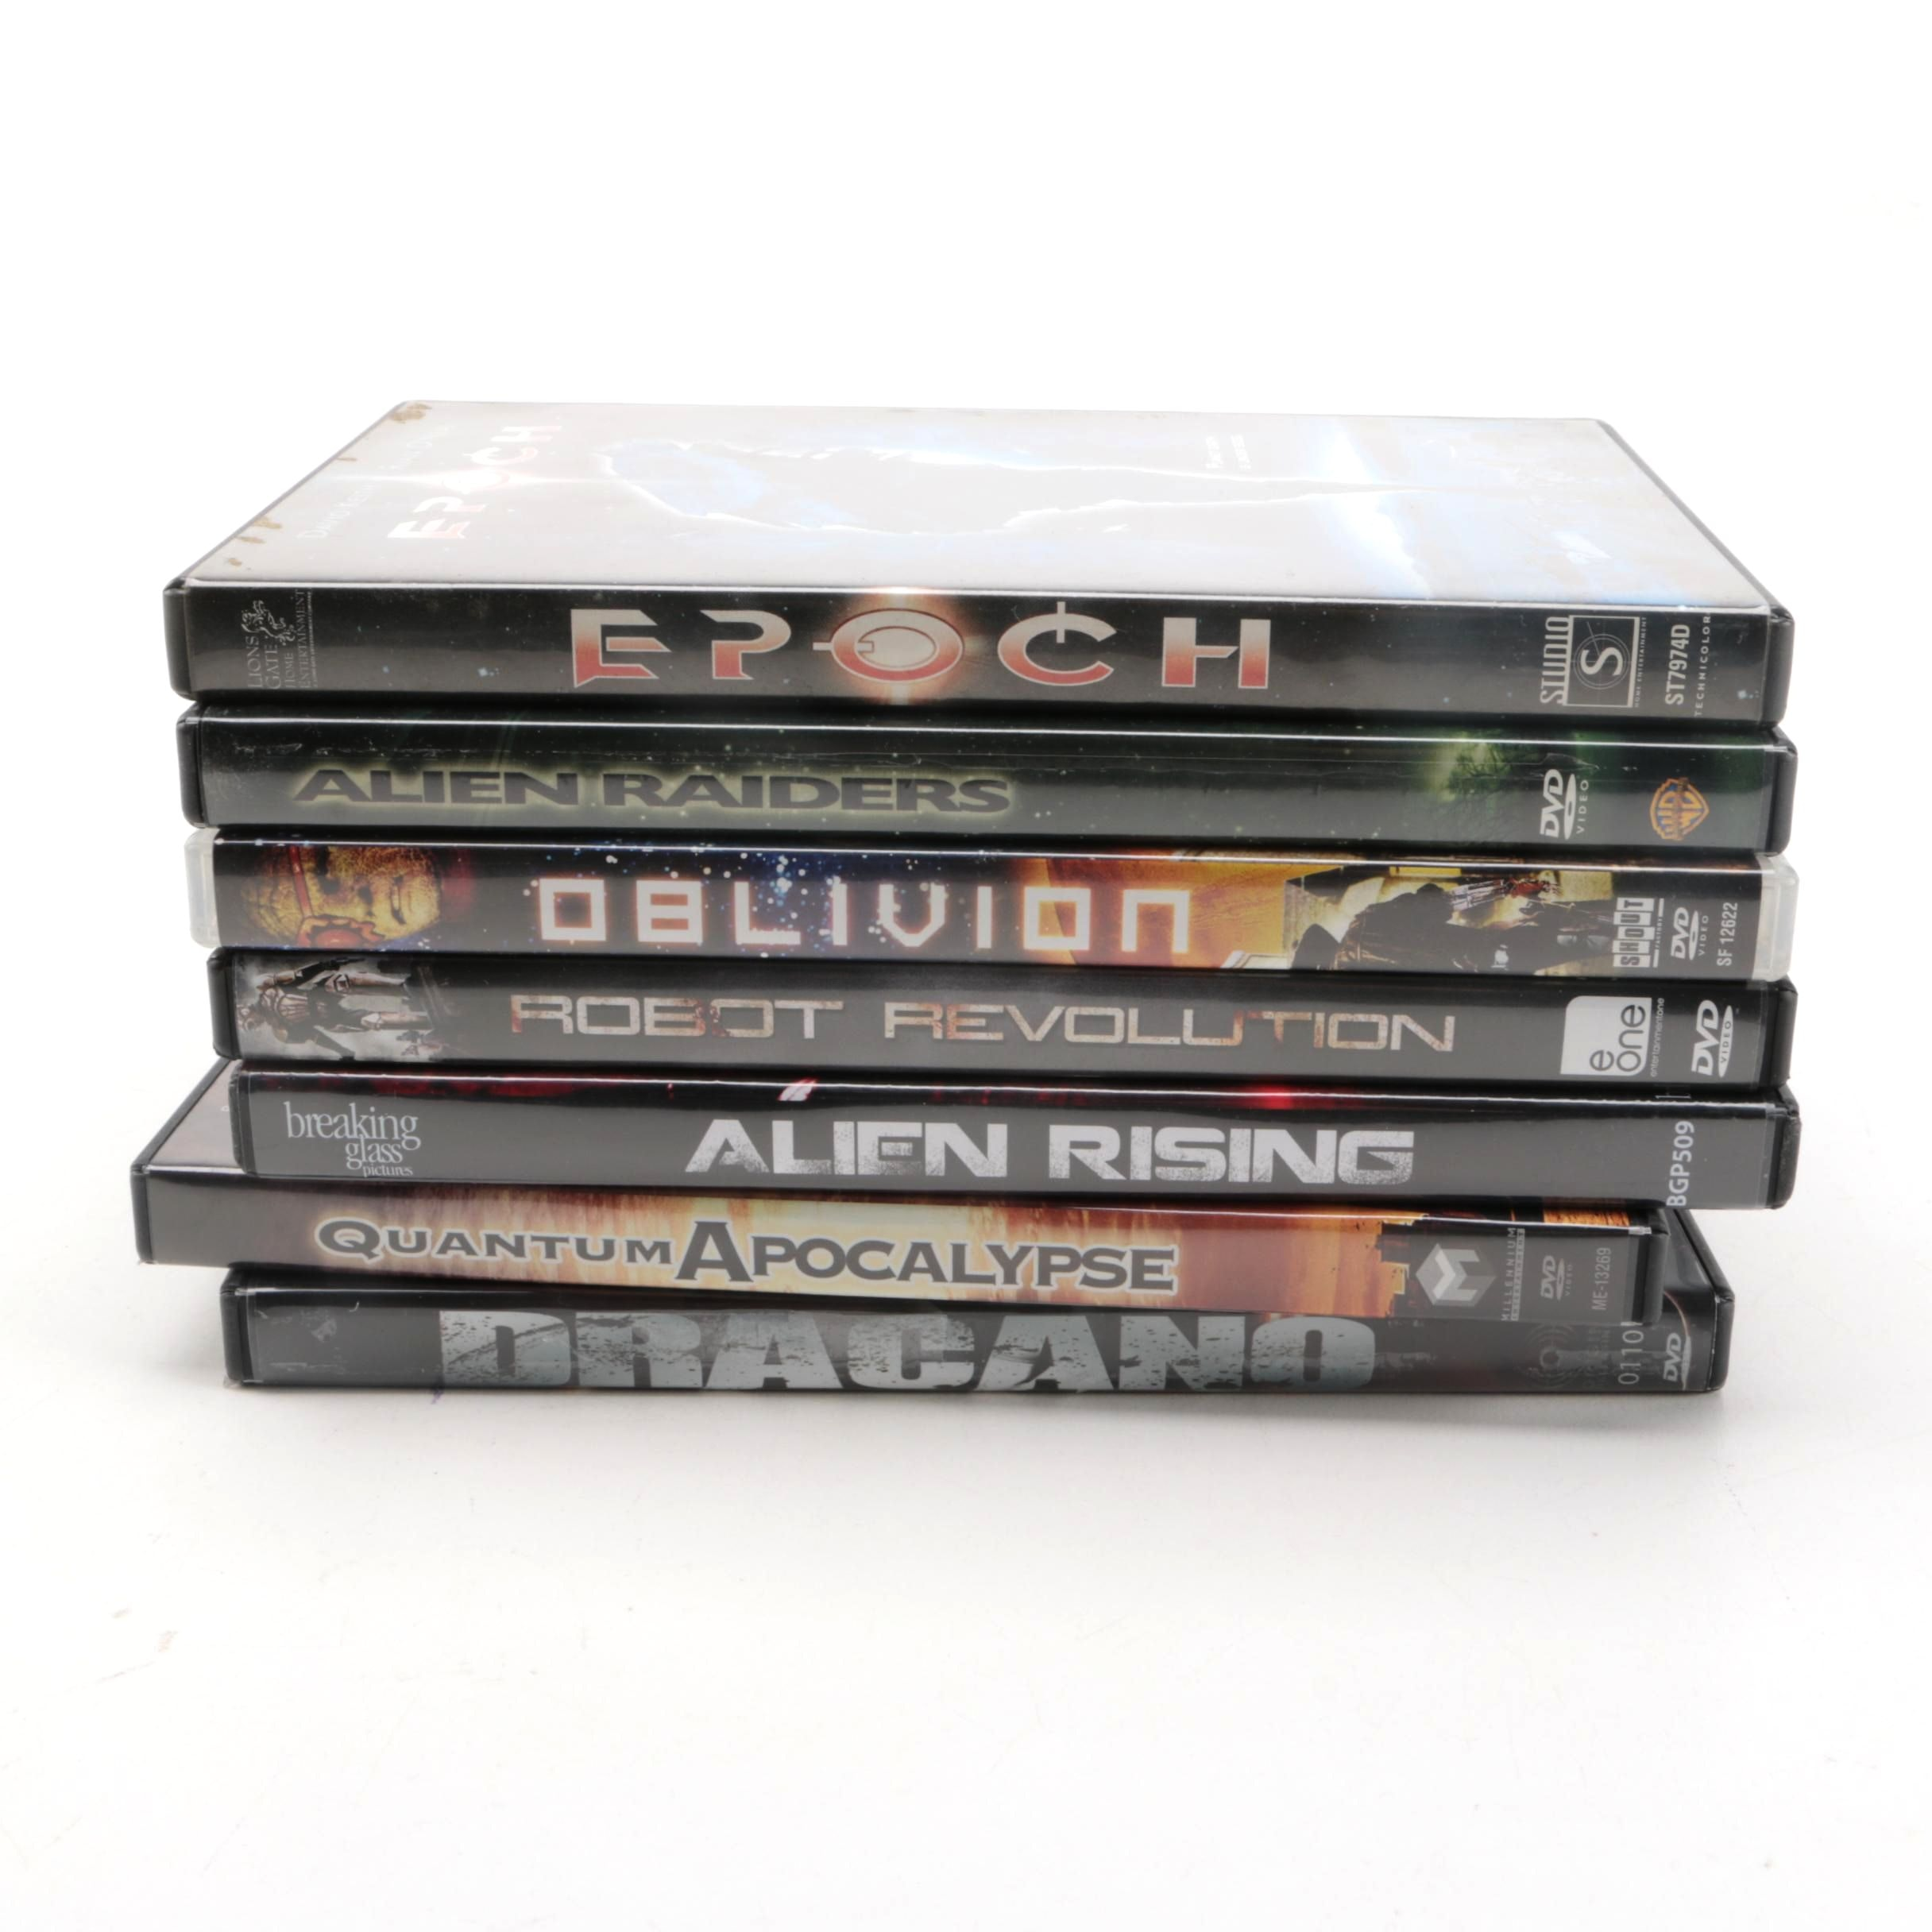 Collection of Six Sci-fi DVDs